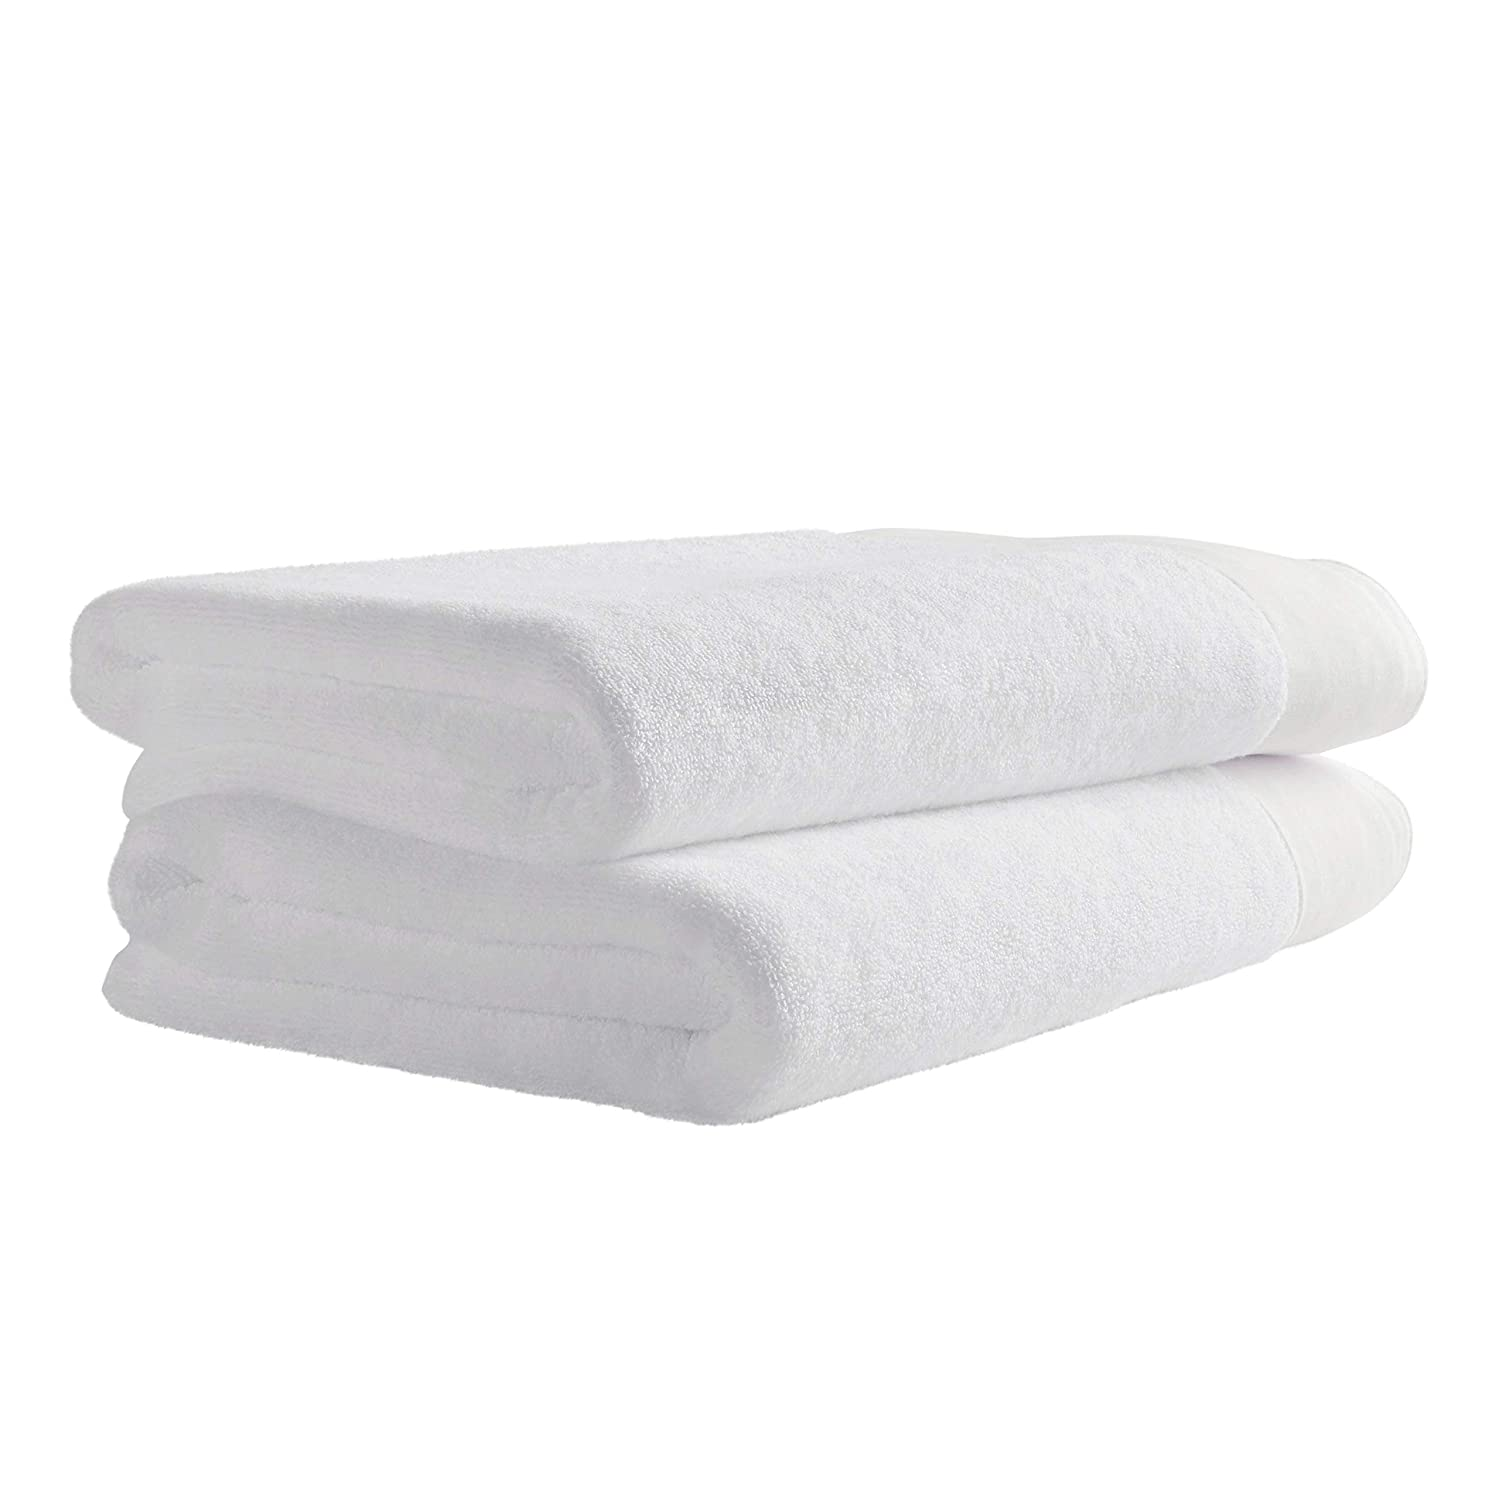 Rivet Contemporary Linen Cuffed Cotton Bath Towels 2-Pack White KASCG ABLK-151-W